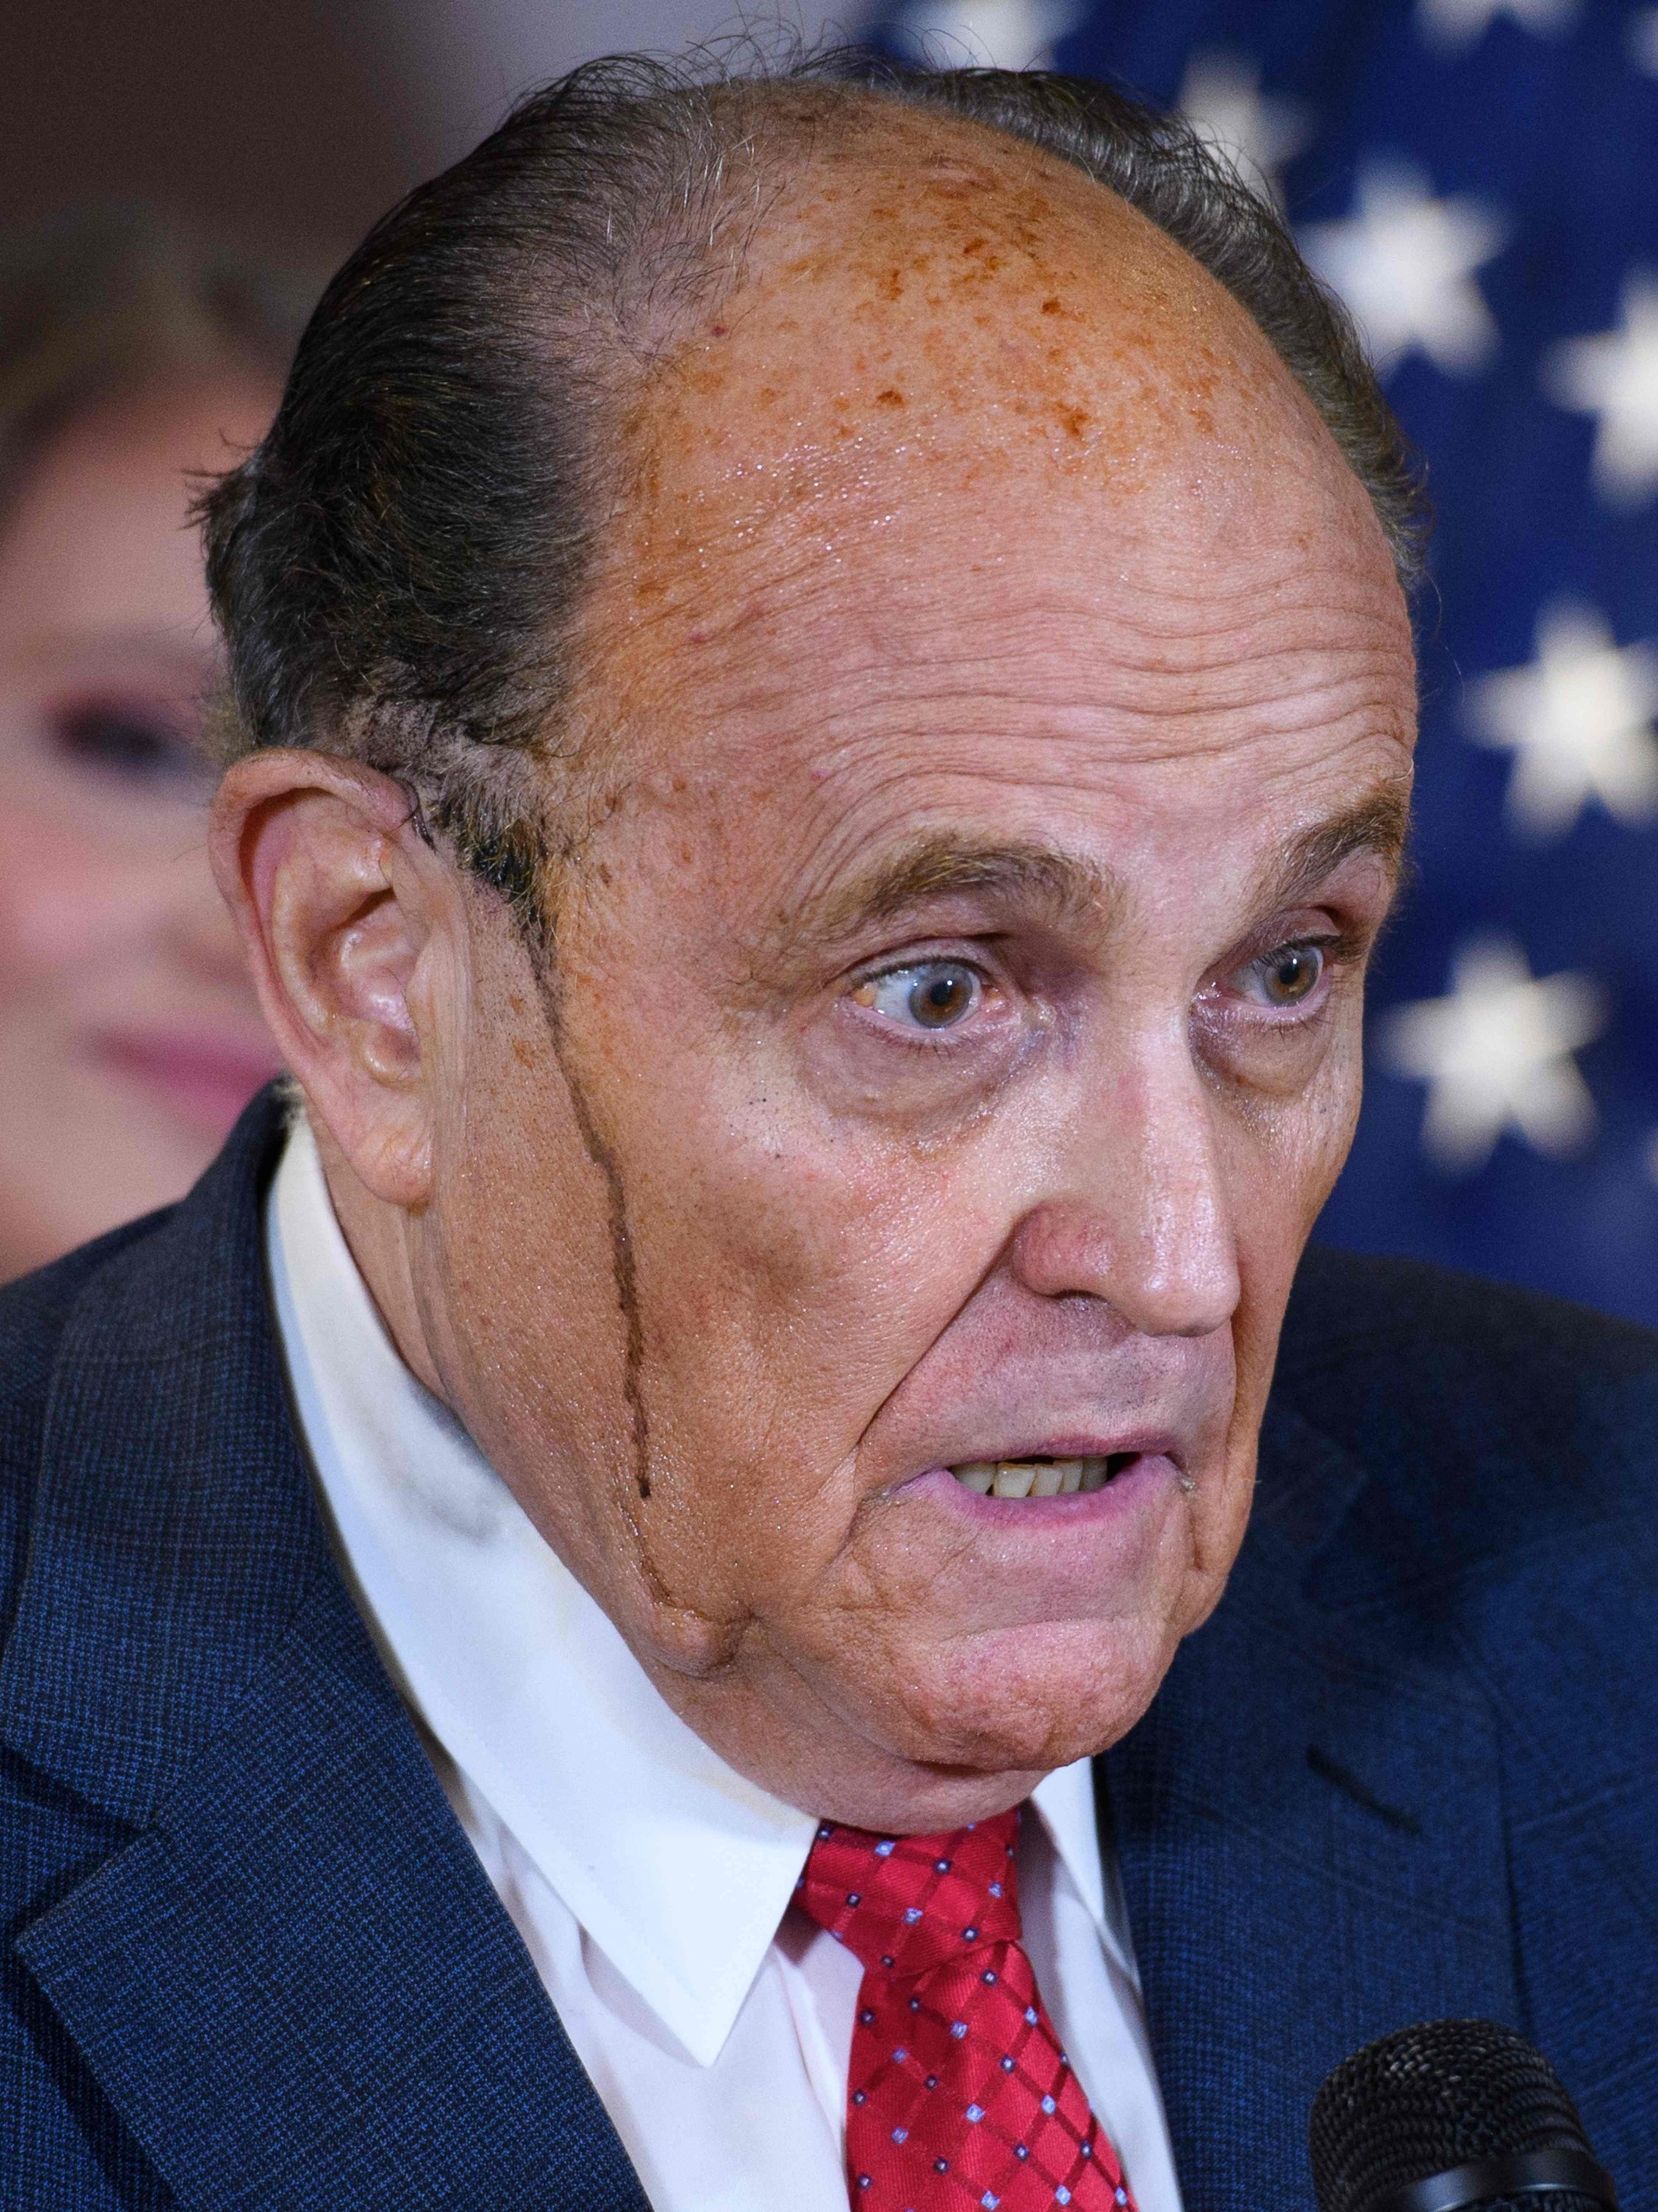 U.S. President Donald Trump's personal lawyer Rudy Giuliani perspires, Washington, D.C., Nov. 19, 2020. (AFP Photo)